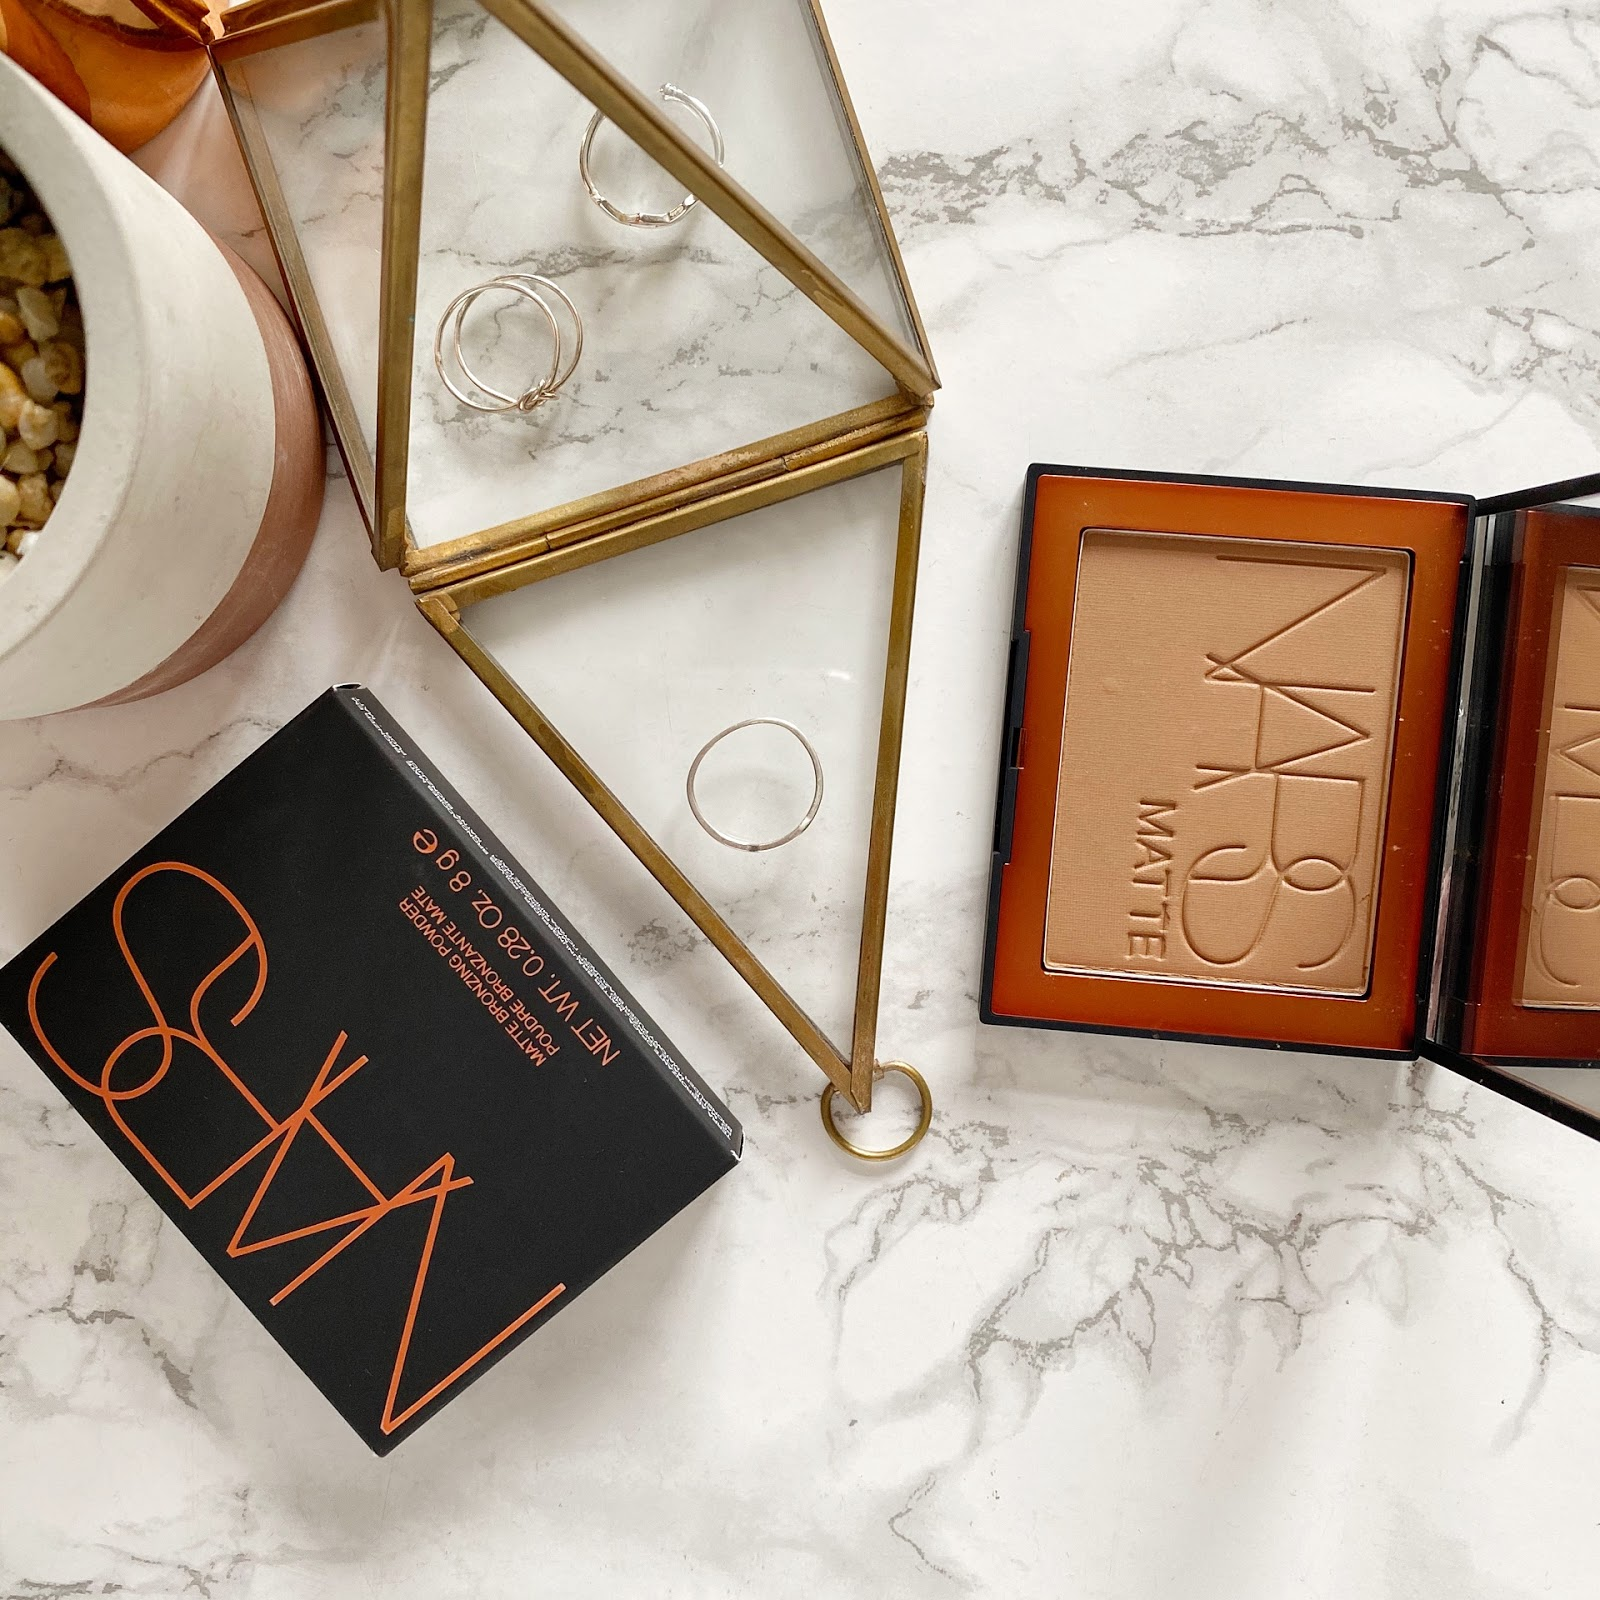 nars laguna matte bronzing powder review